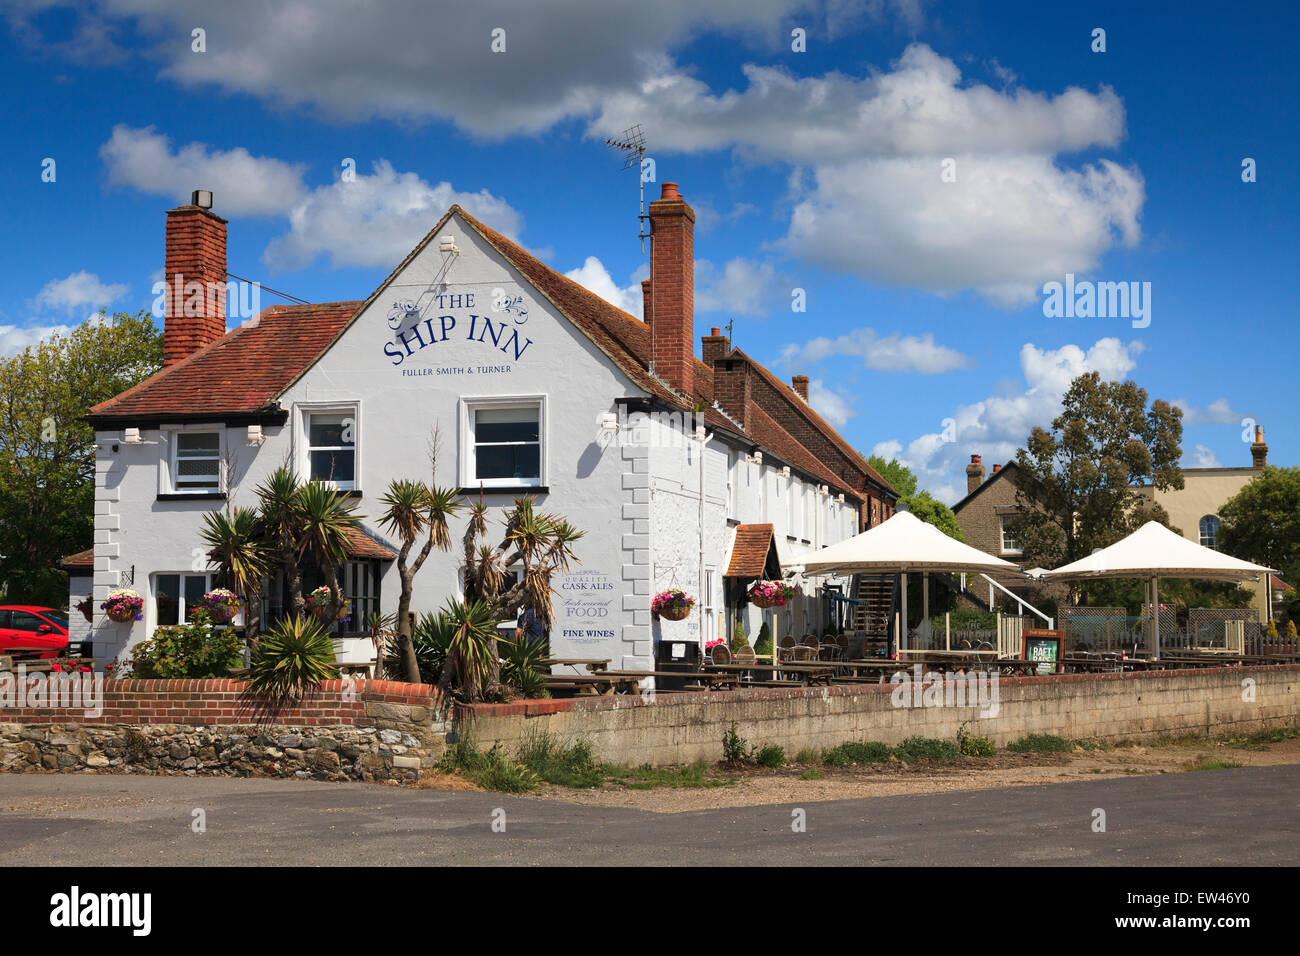 The Ship Inn at Langstone on a sunny day without people Stock Photo